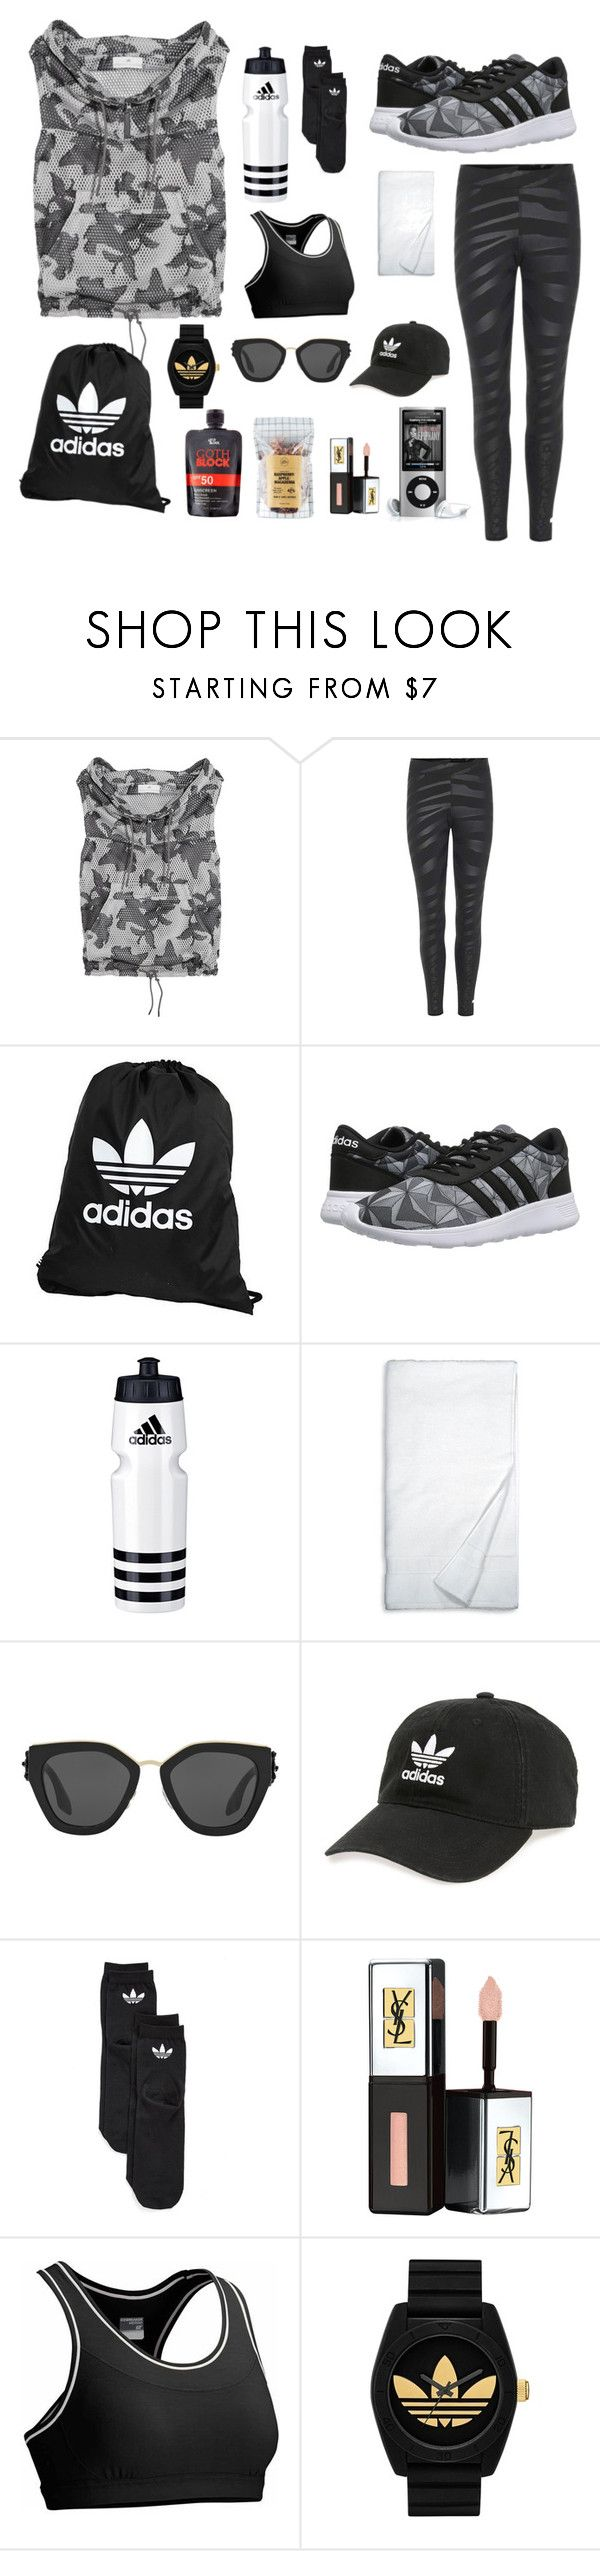 Good Morning, Let's to Gym by risalba on Polyvore featuring adidas, Icebreaker, Prada, Yves Saint Laurent, DKNY, Nicolas Vahé and Let it Block